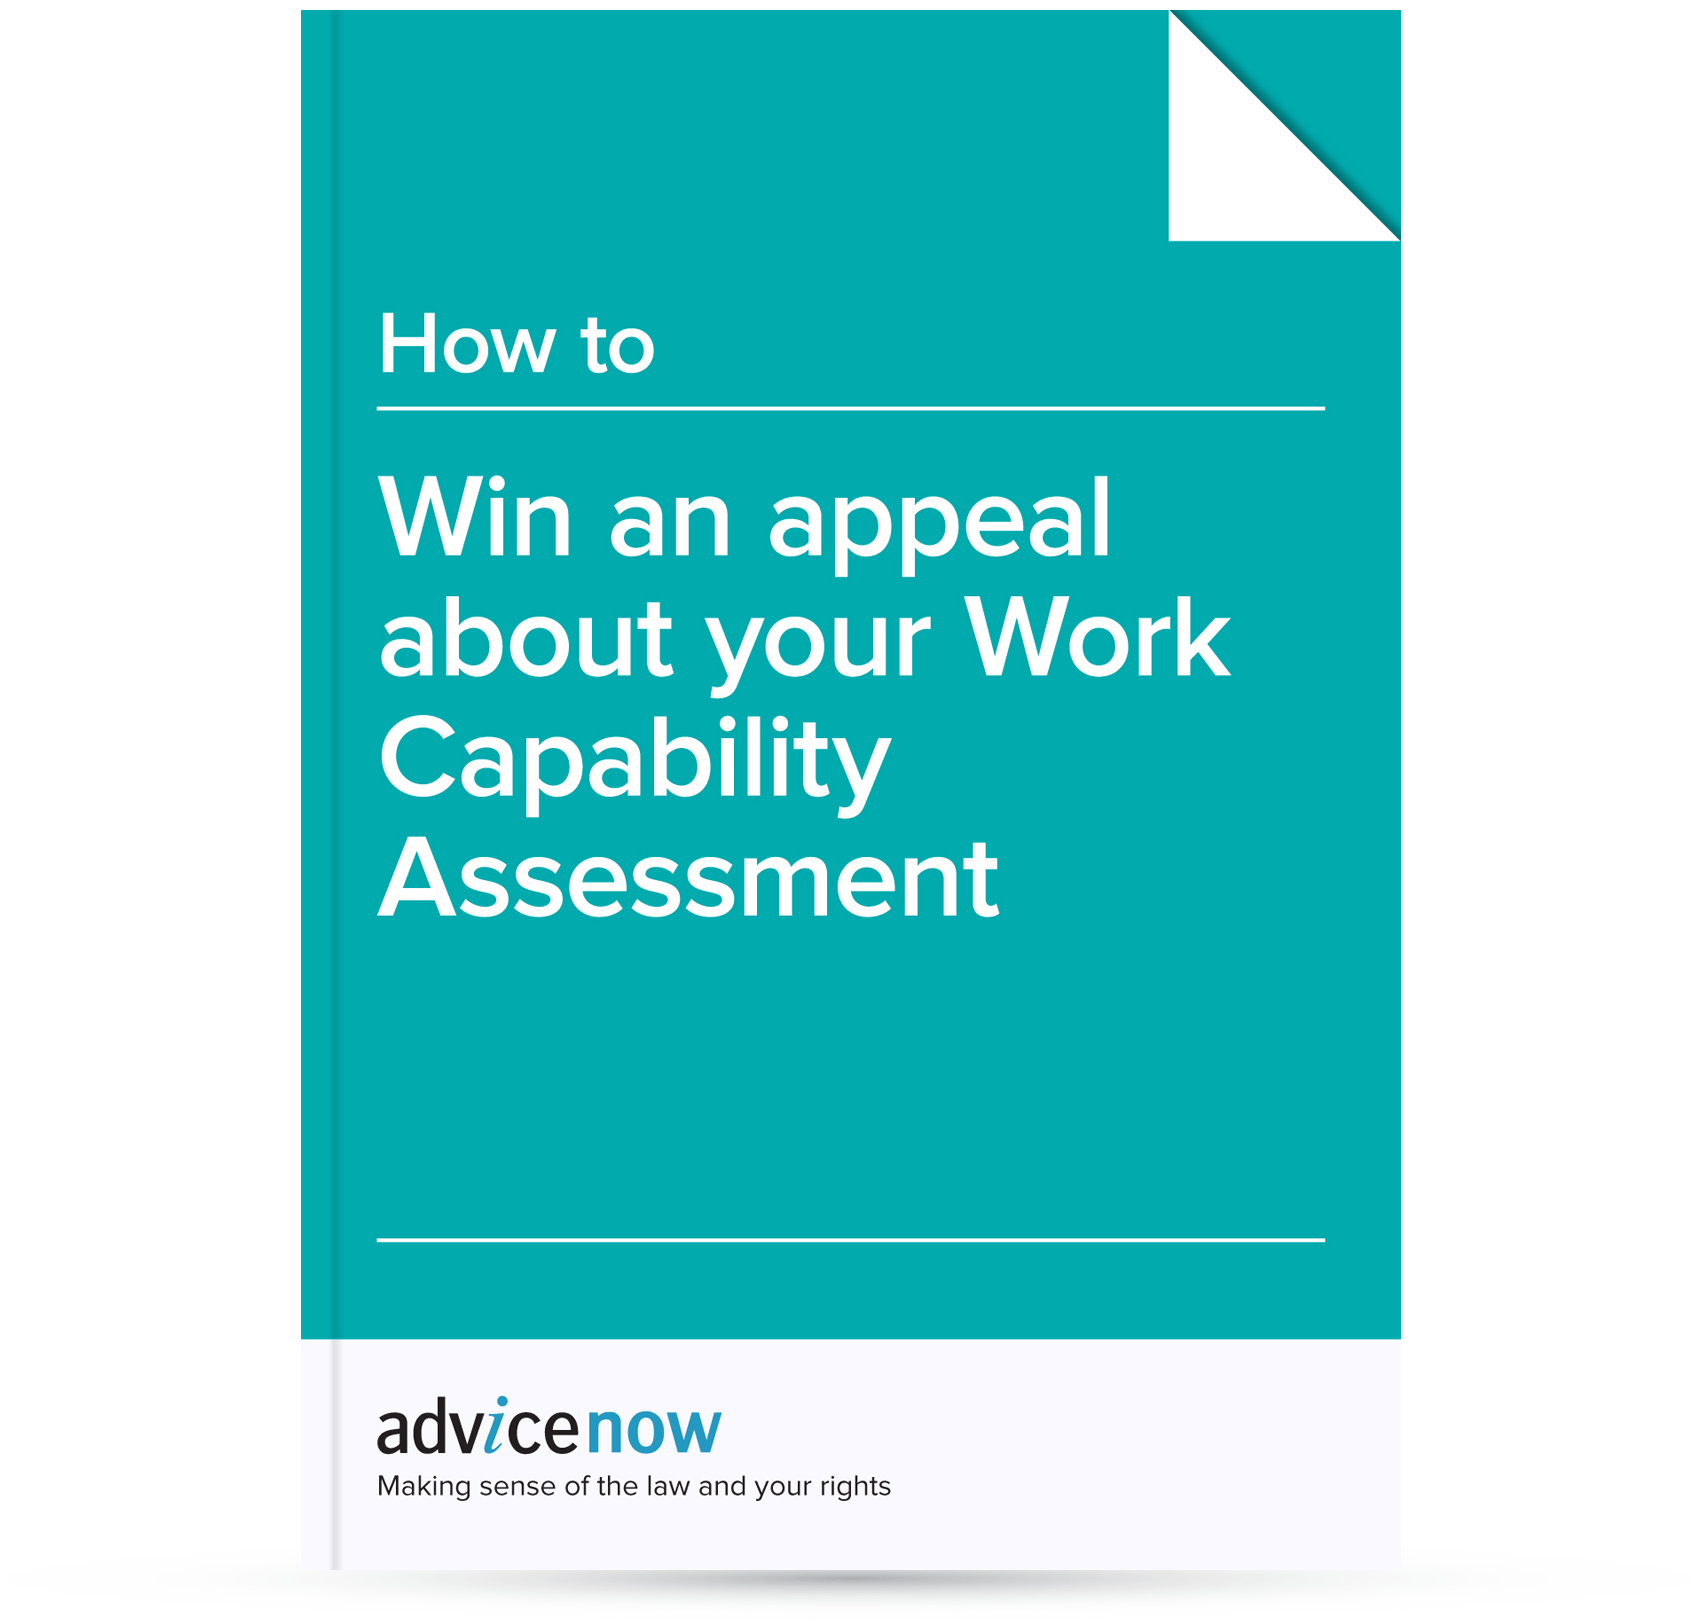 How To Win An Appeal About Your Work Capability Assessment